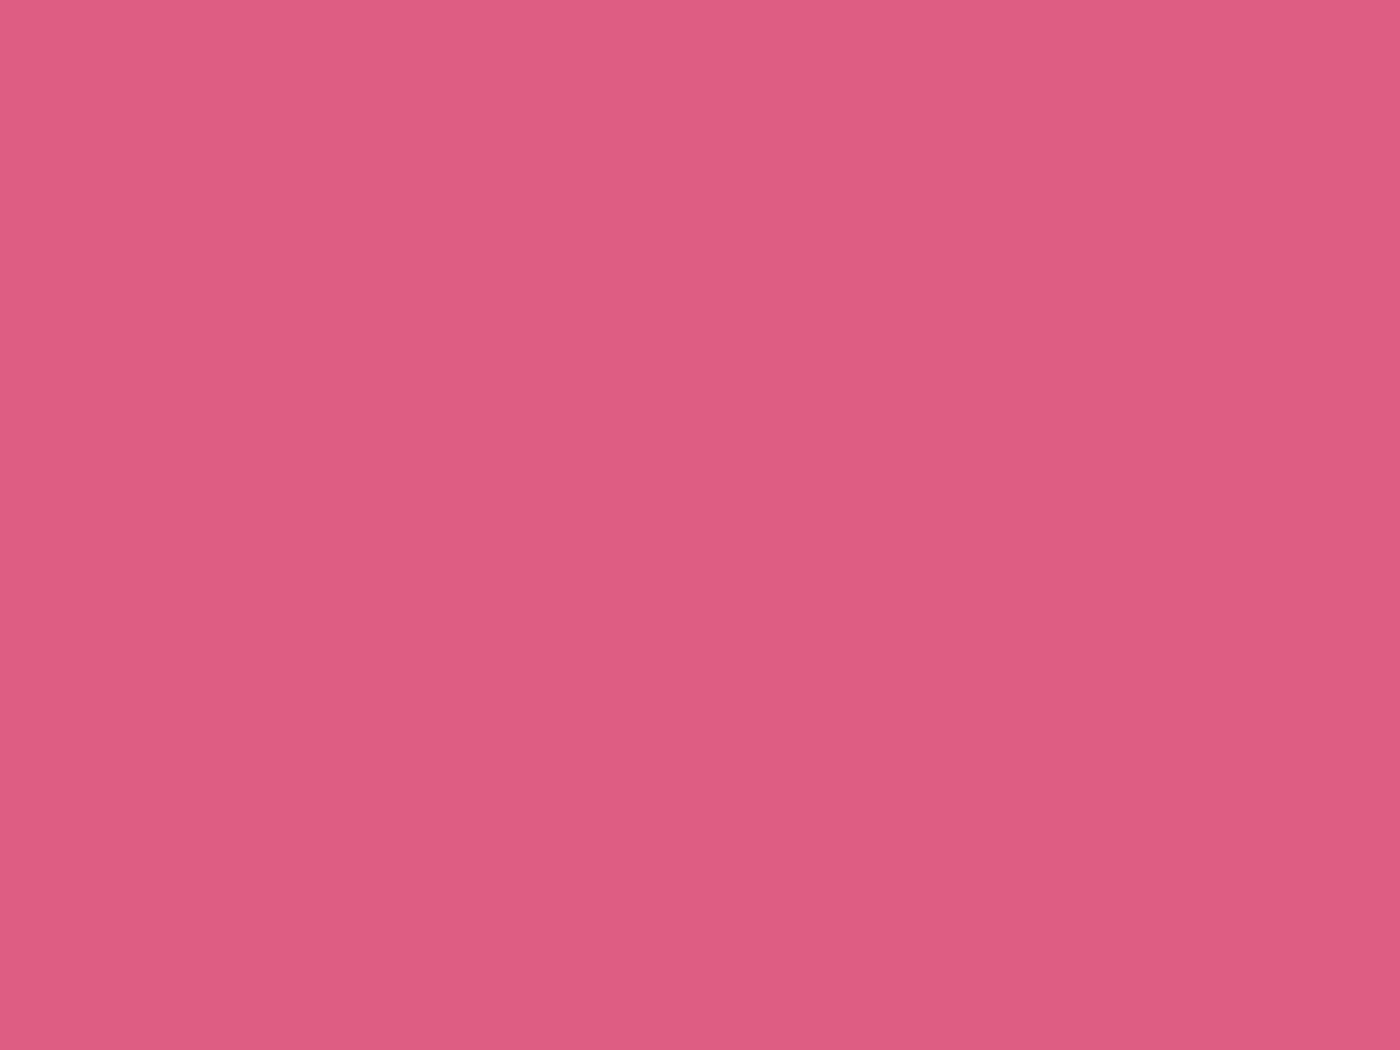 1400x1050 Blush Solid Color Background